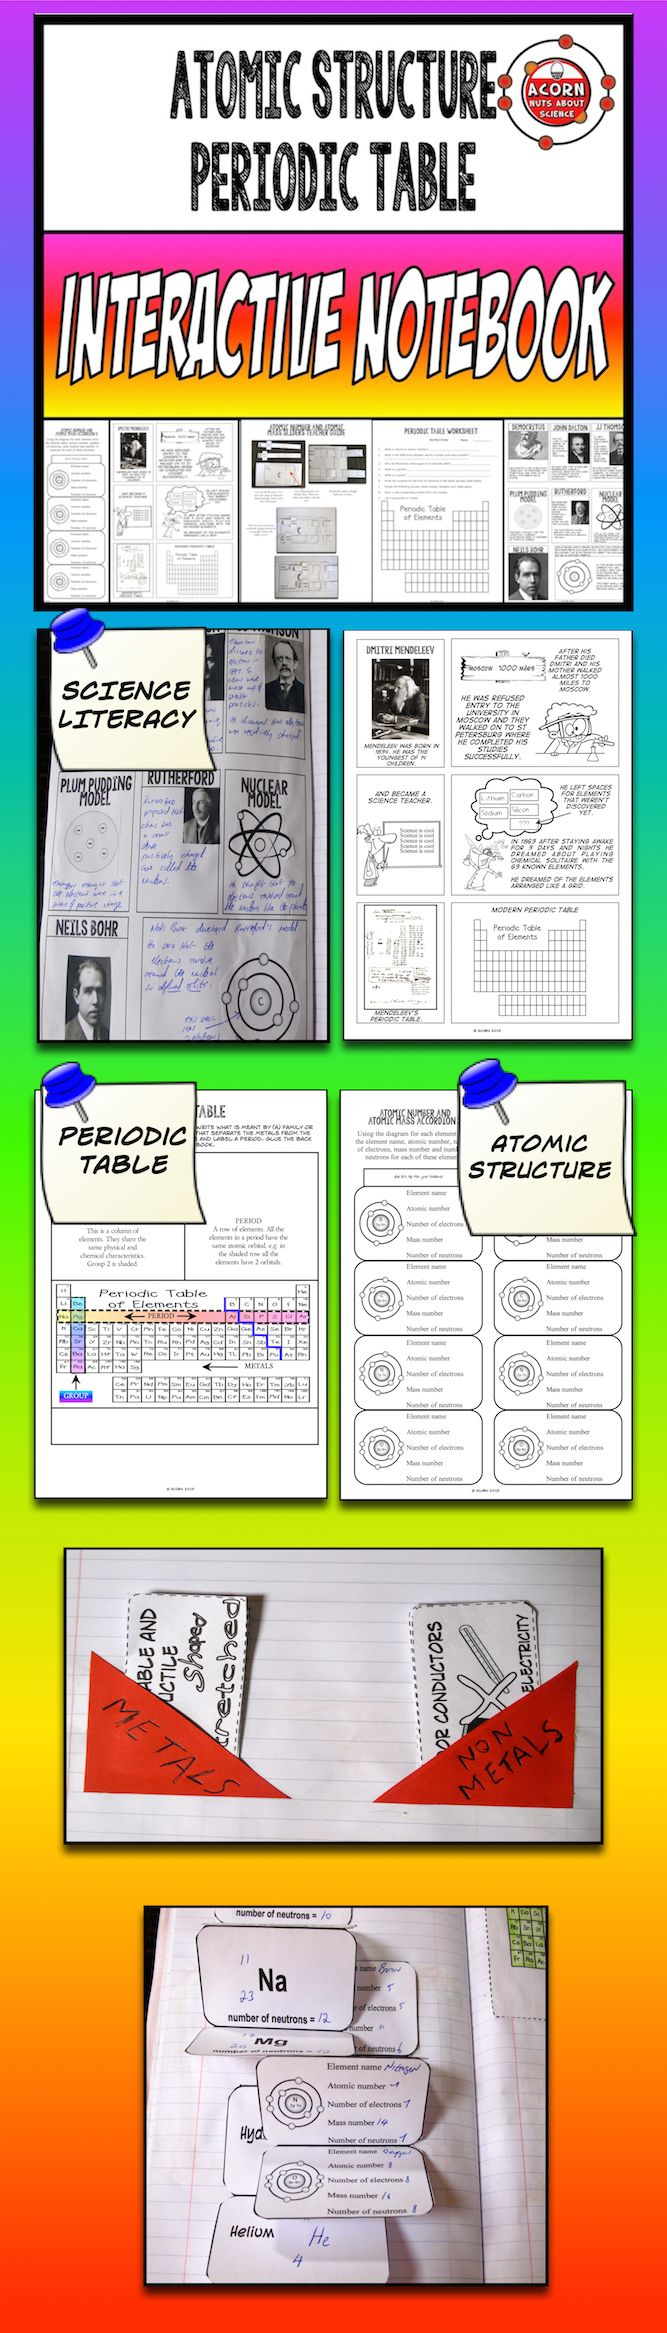 Atom structure periodic table interactive notebook periodic atom structure periodic table interactive notebook gamestrikefo Image collections